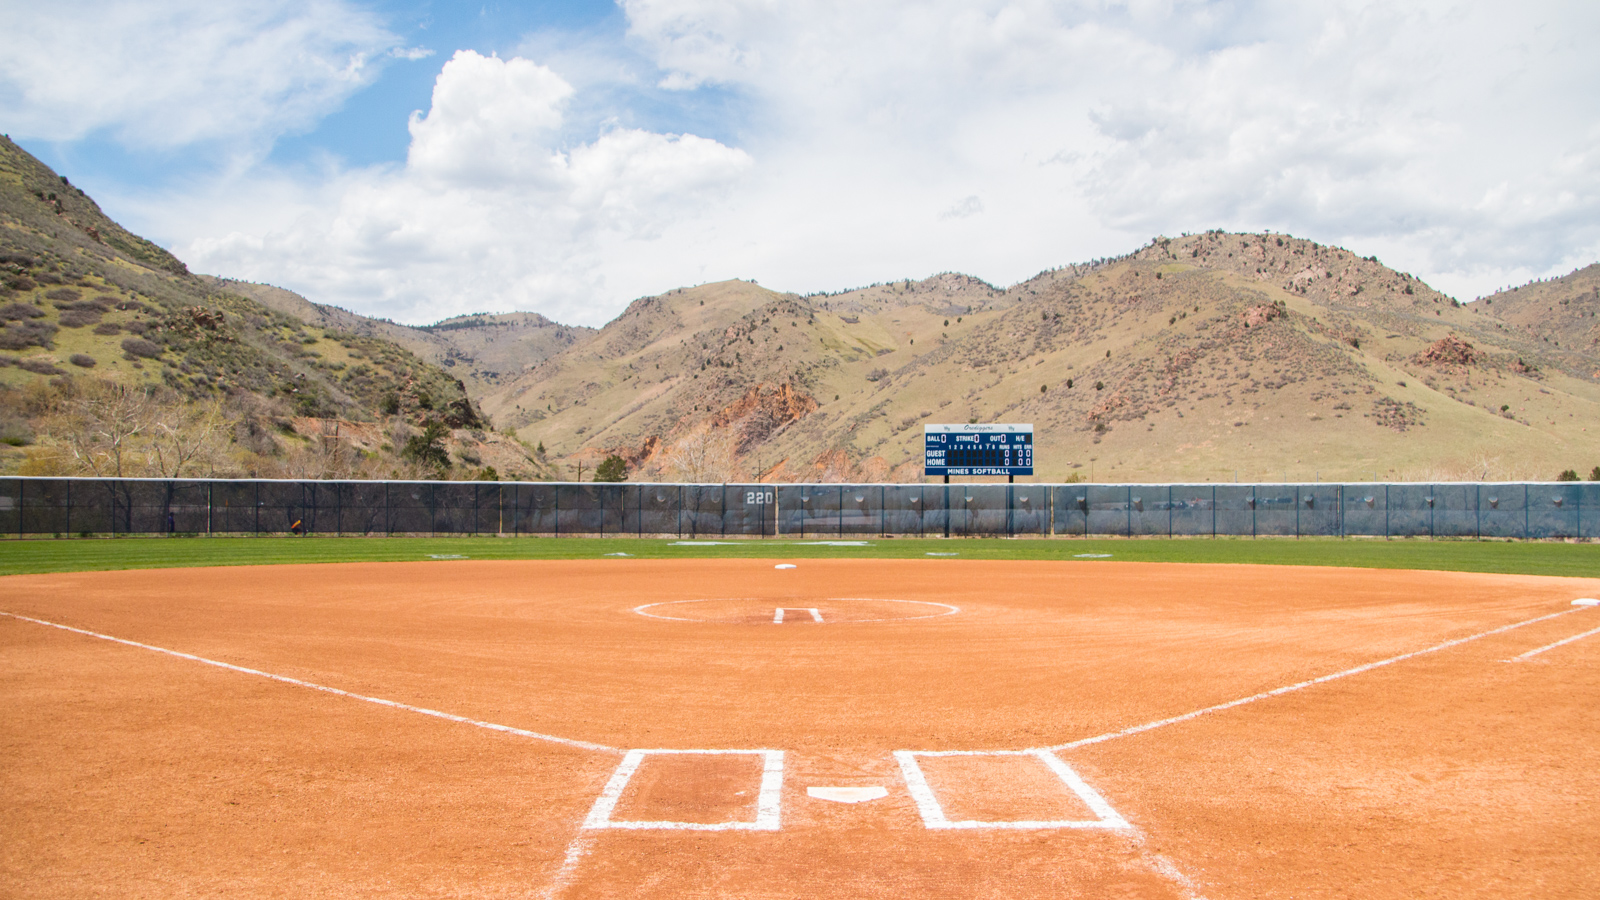 Here is a well kept softball field.